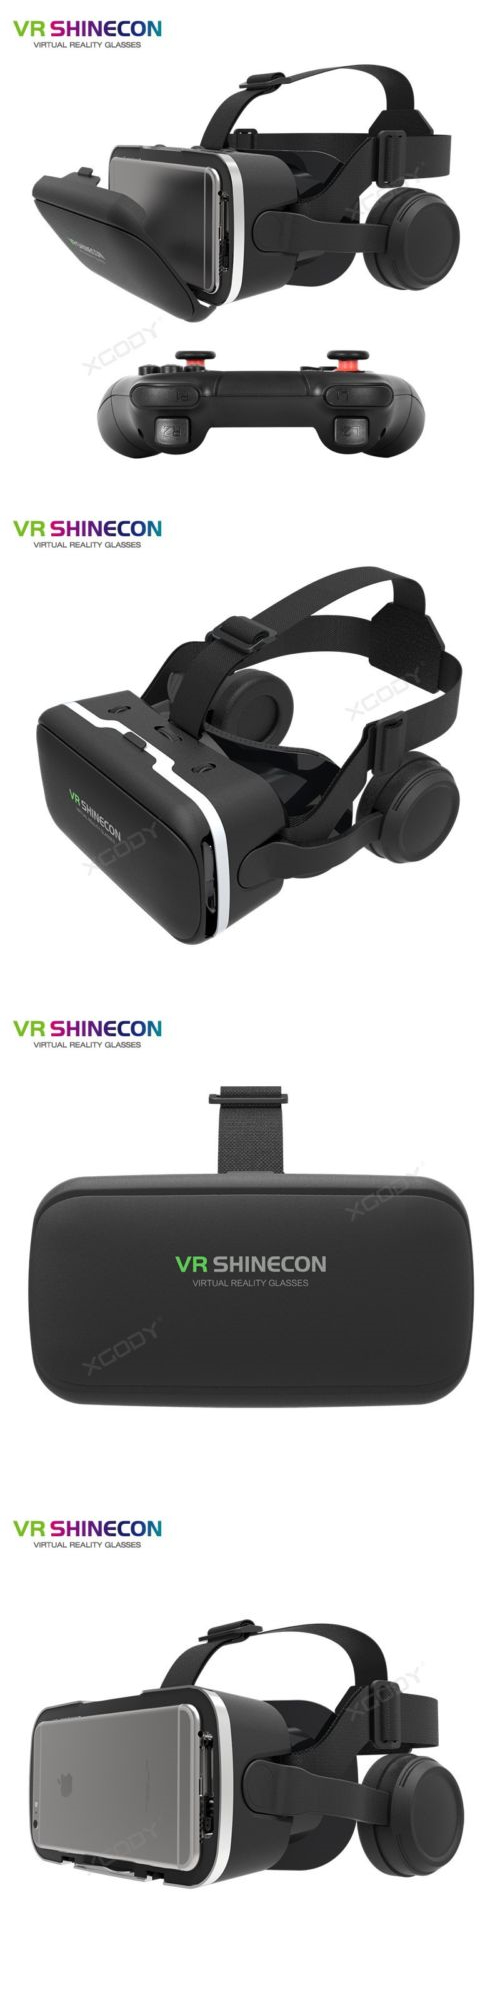 45633dd2ba57 3D TV Glasses and Accessories  3D Vr Shinecon 6Th Virtual Reality Glasses  With Earphone Bluetooth